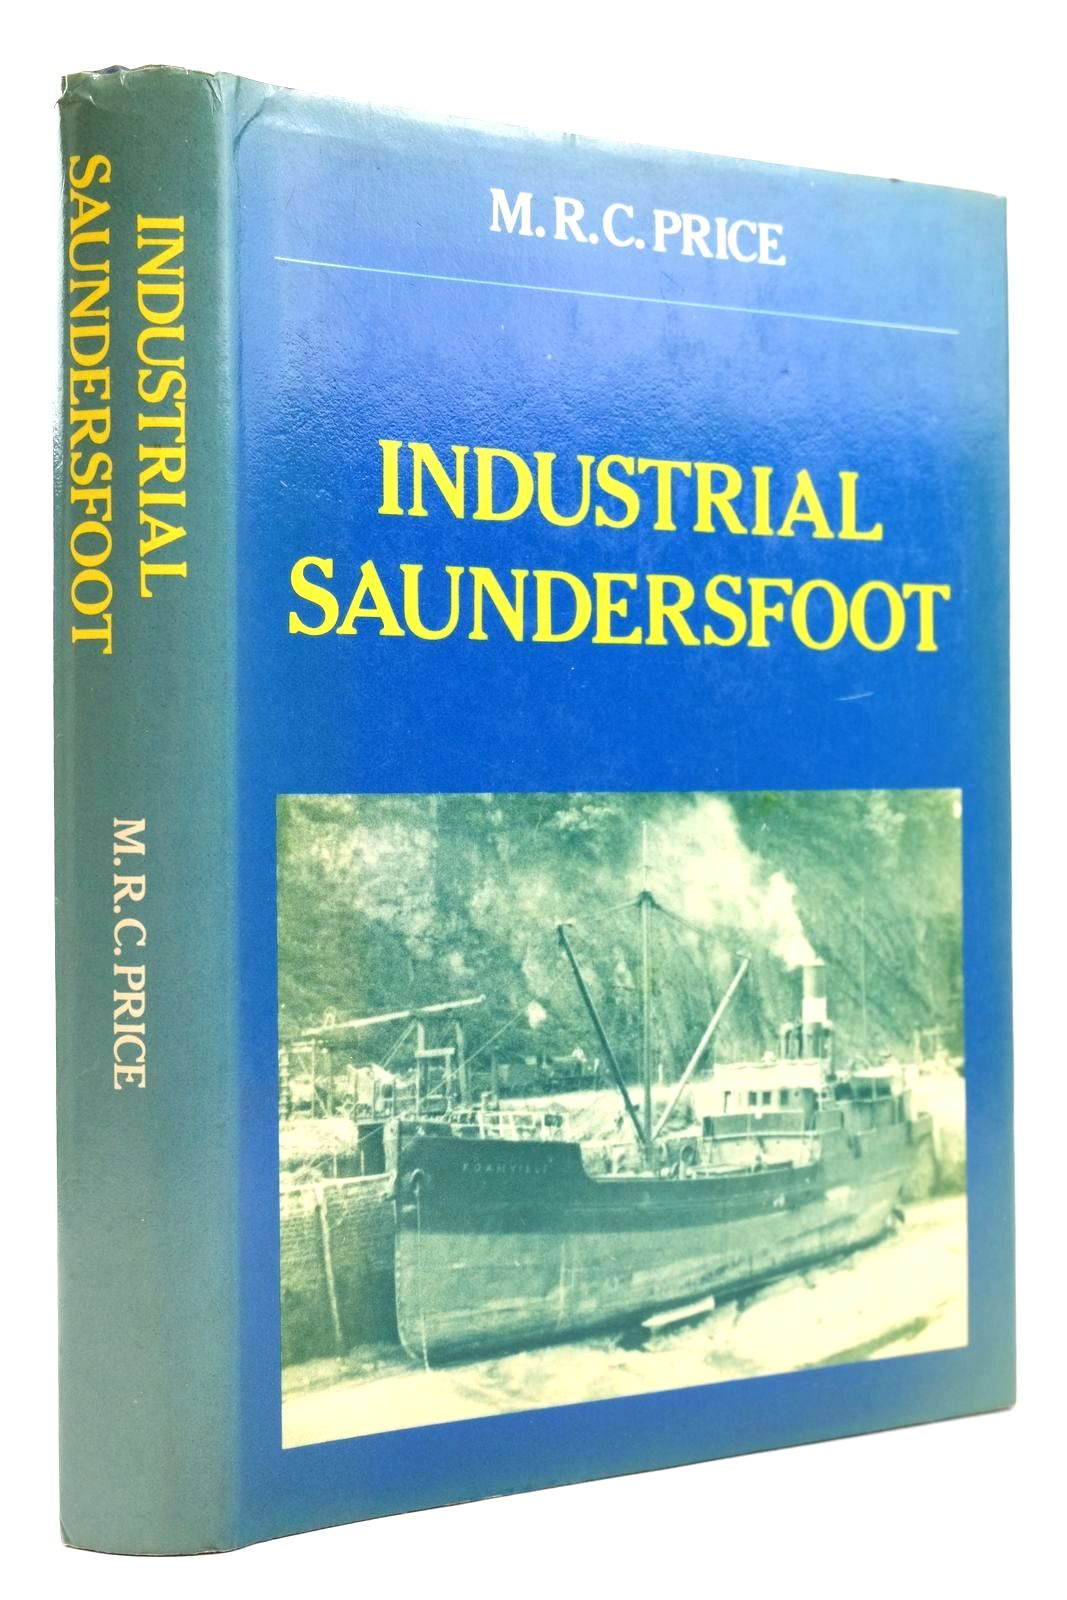 Photo of INDUSTRIAL SAUNDERSFOOT written by Price, M.R.C. published by Gomer Press (STOCK CODE: 2132504)  for sale by Stella & Rose's Books